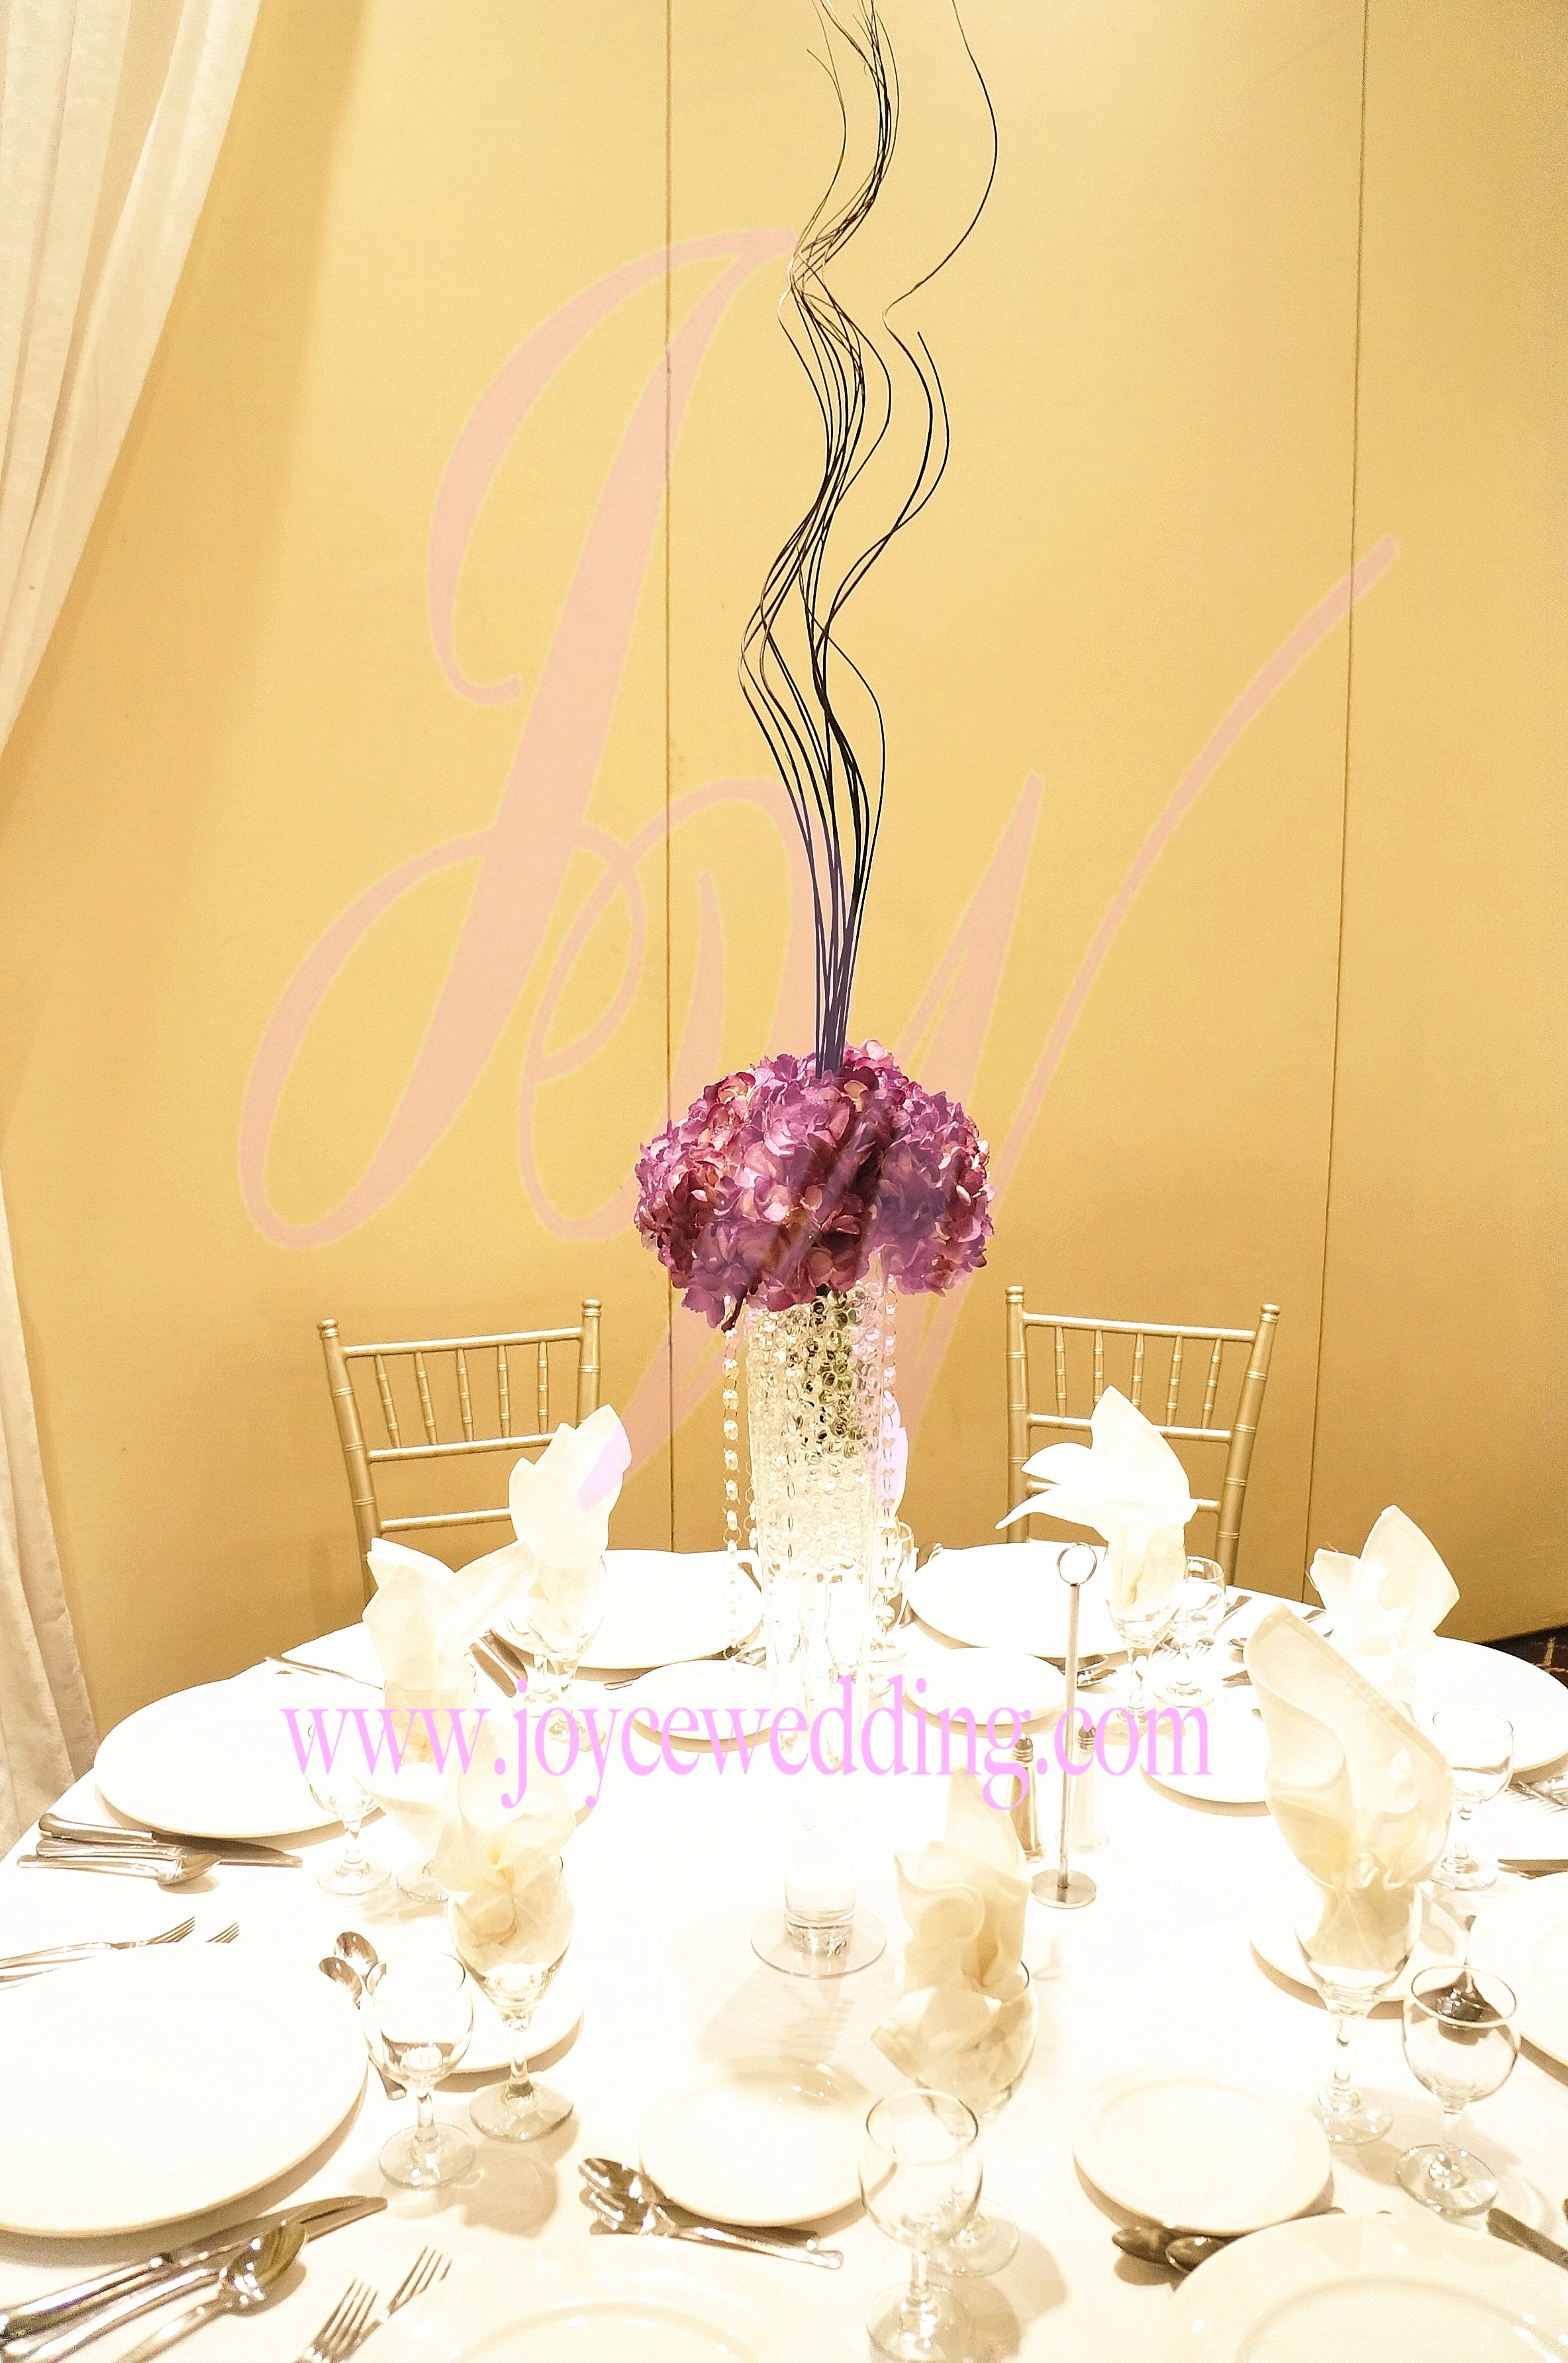 #Centerpiece Of #Purple #Hydrangeas And #Longbranch In #Crystal #Vase With